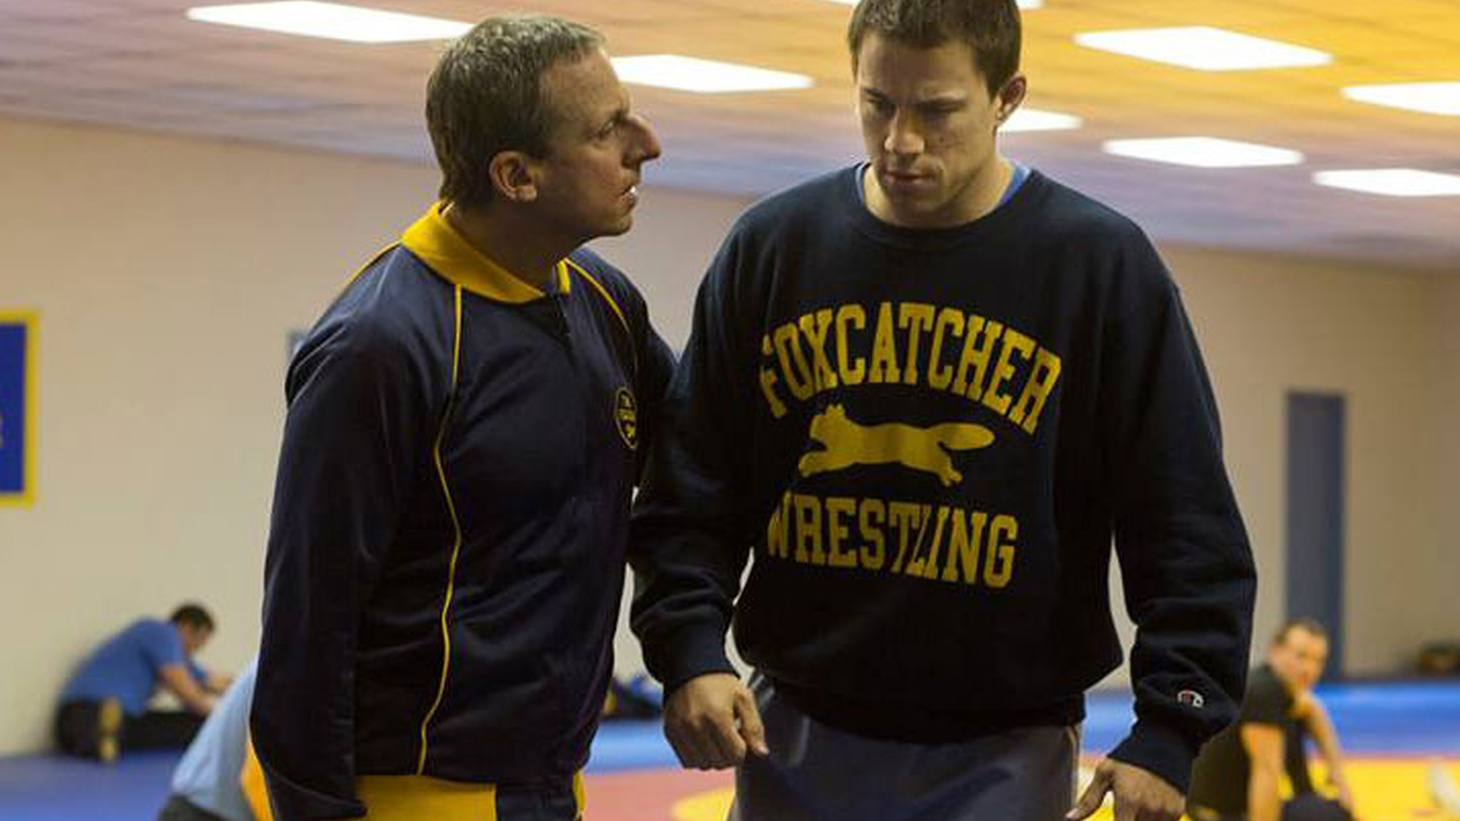 Foxcatcher is an enthralling enigma of a movie.